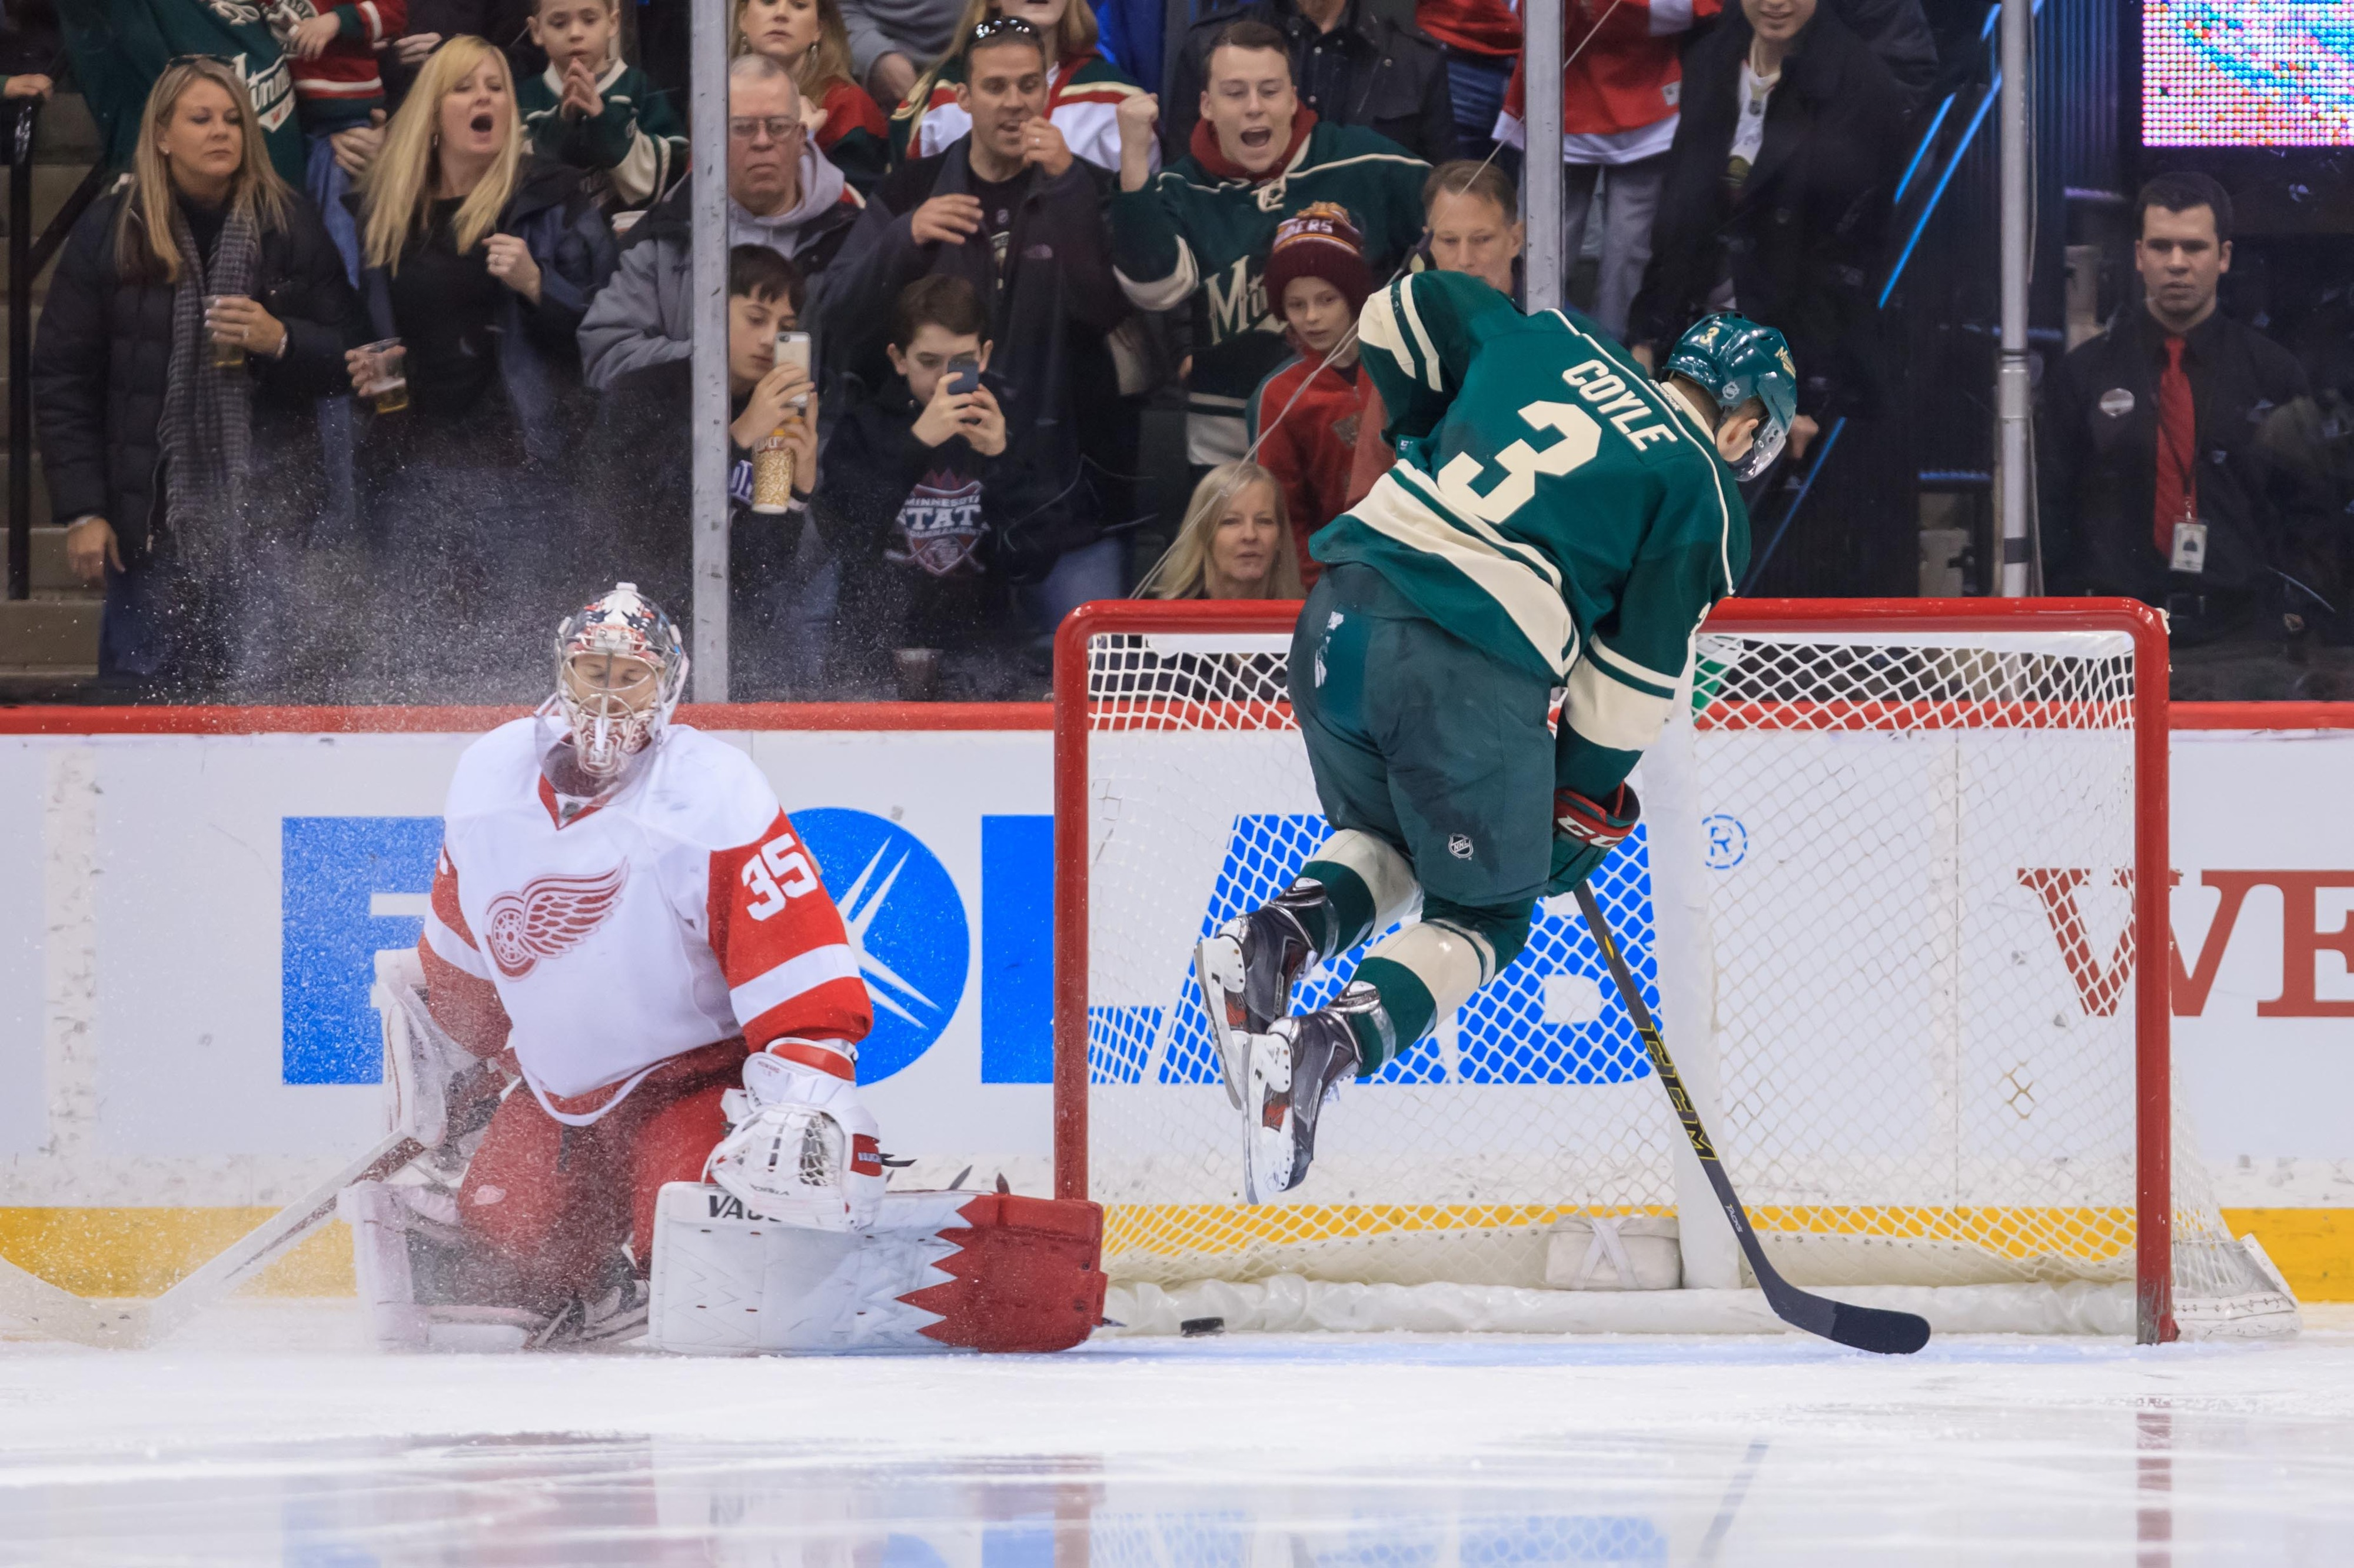 Now that's what I call moving the goaltender